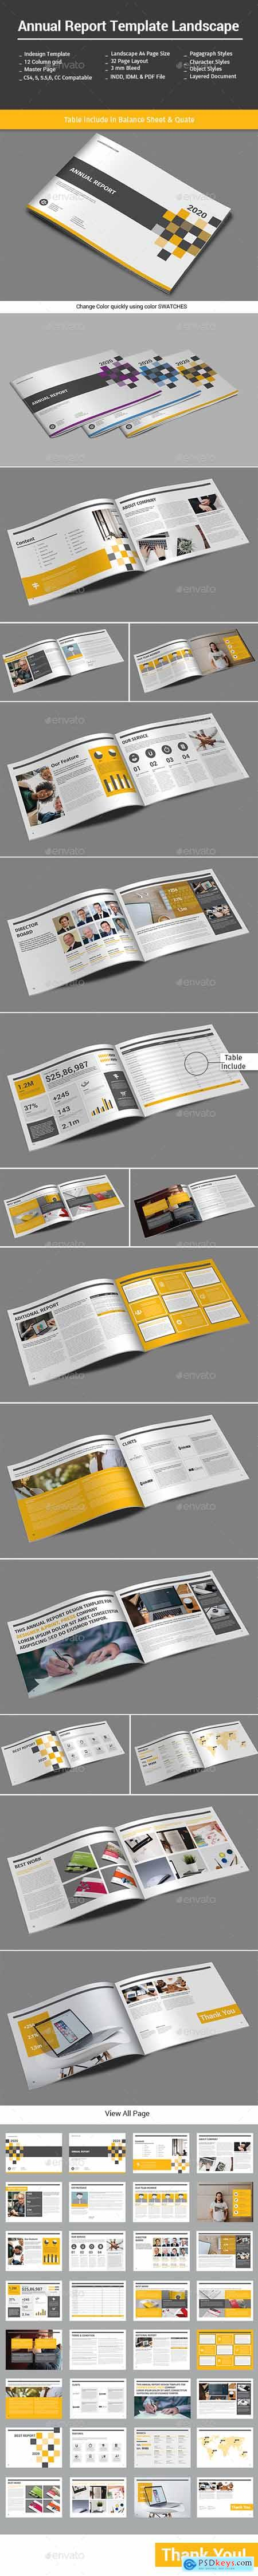 Annual Report Template Landscape